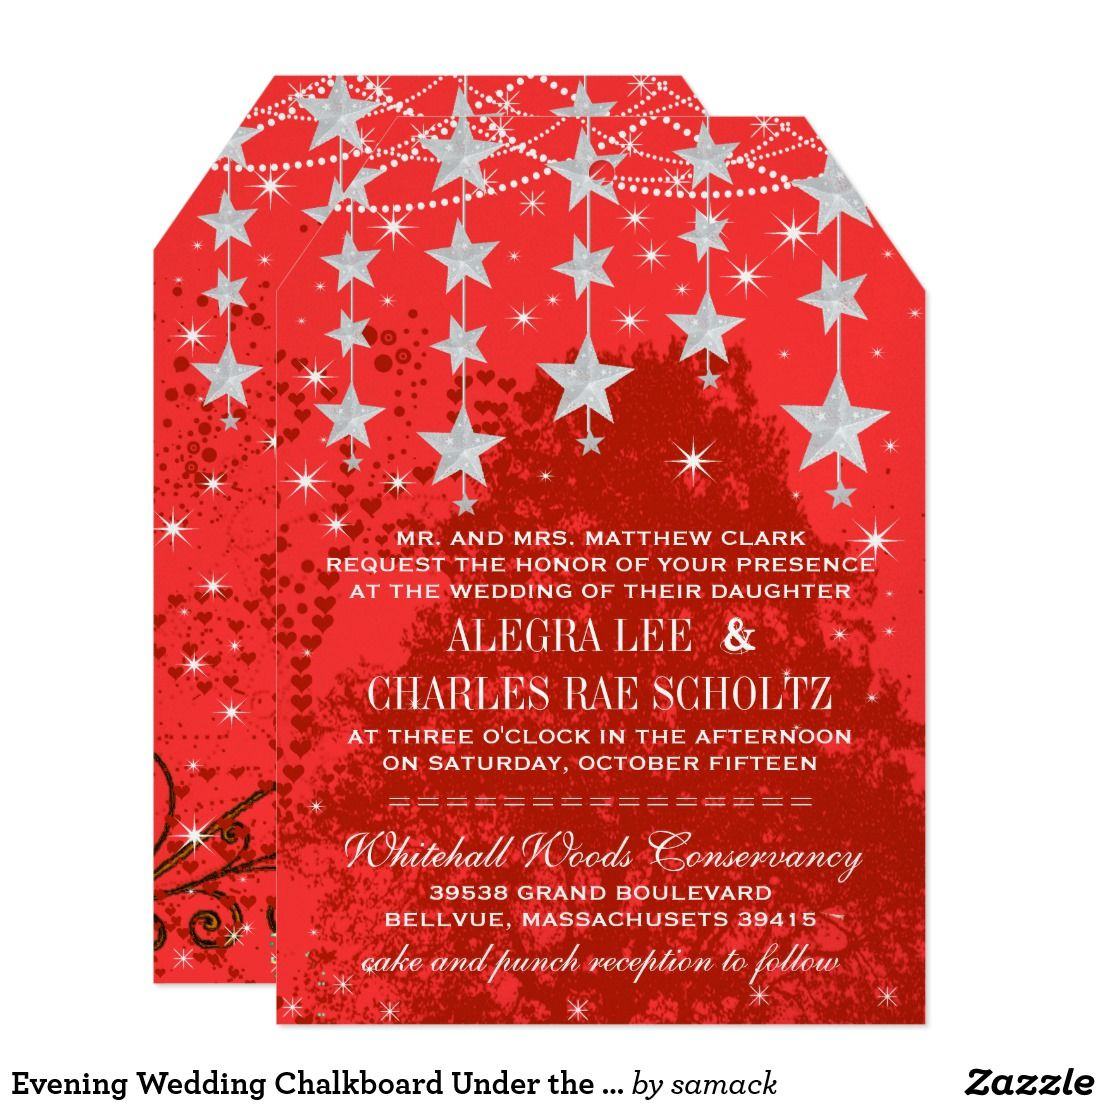 Evening Wedding Chalkboard Under the Stars Card | Typography ...